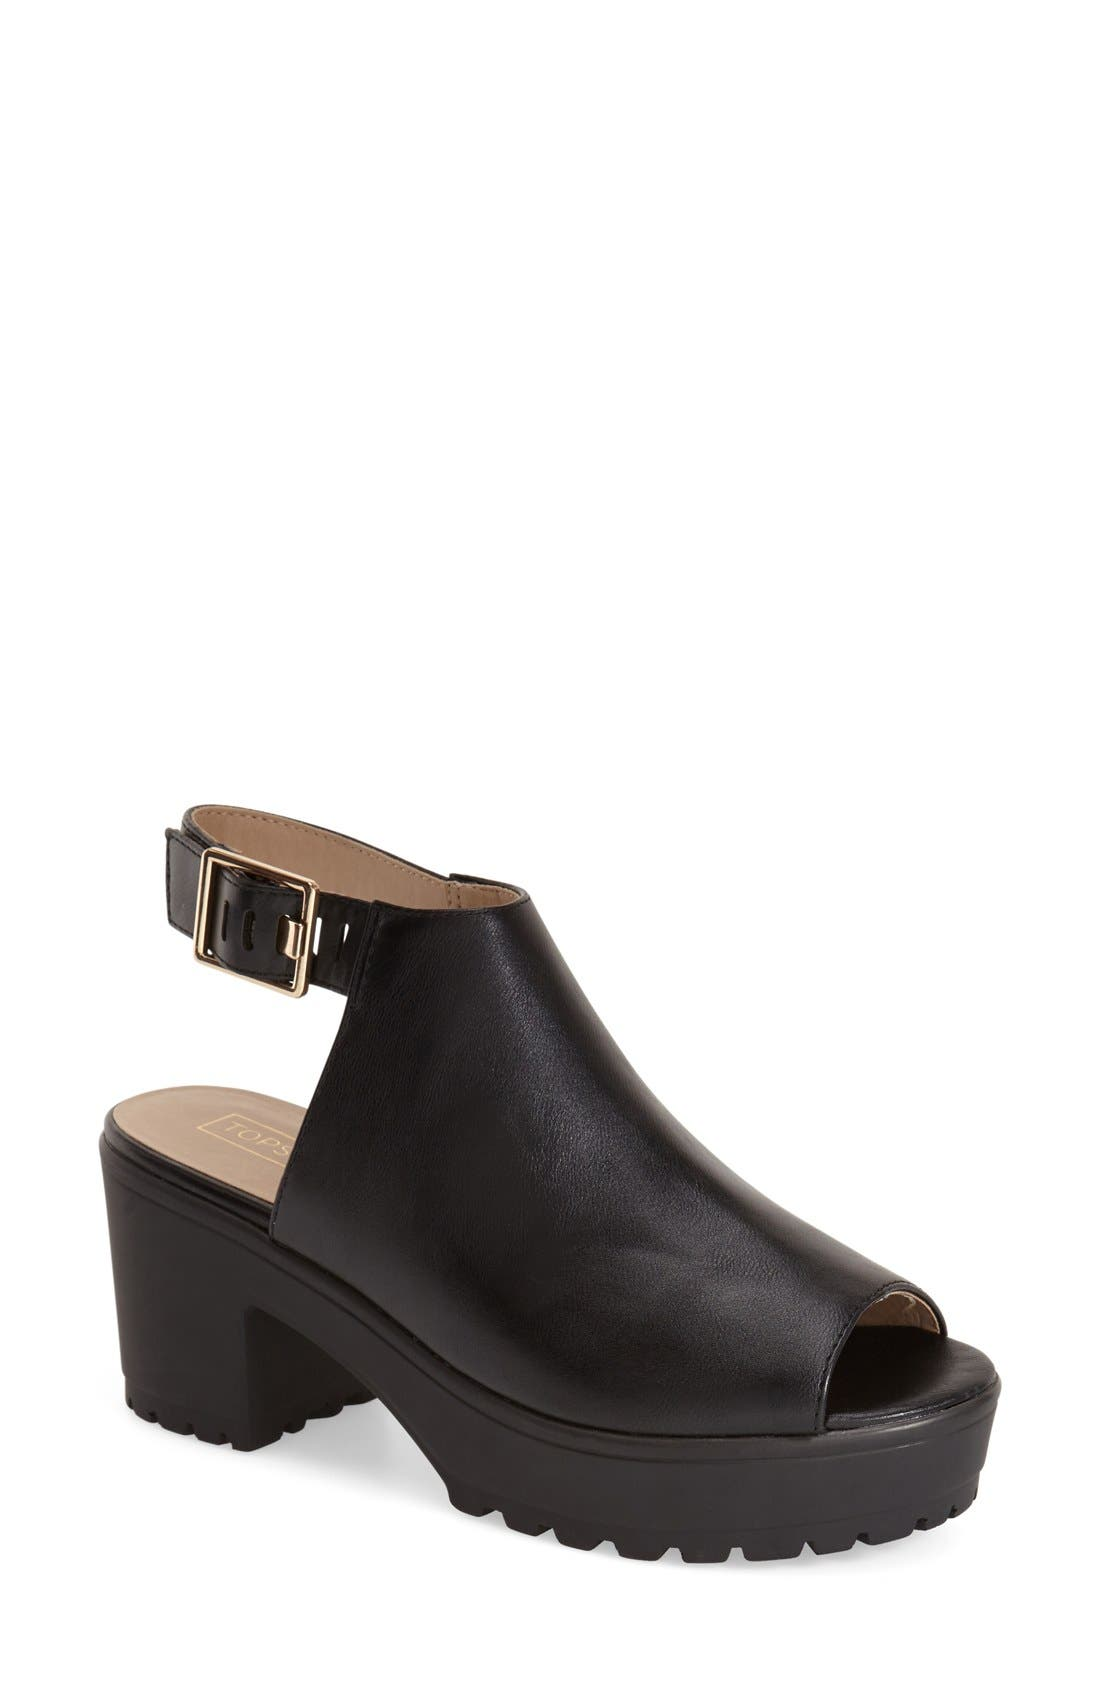 Alternate Image 1 Selected - Topshop 'Bat Cleated' Slingback Sandal (Women)